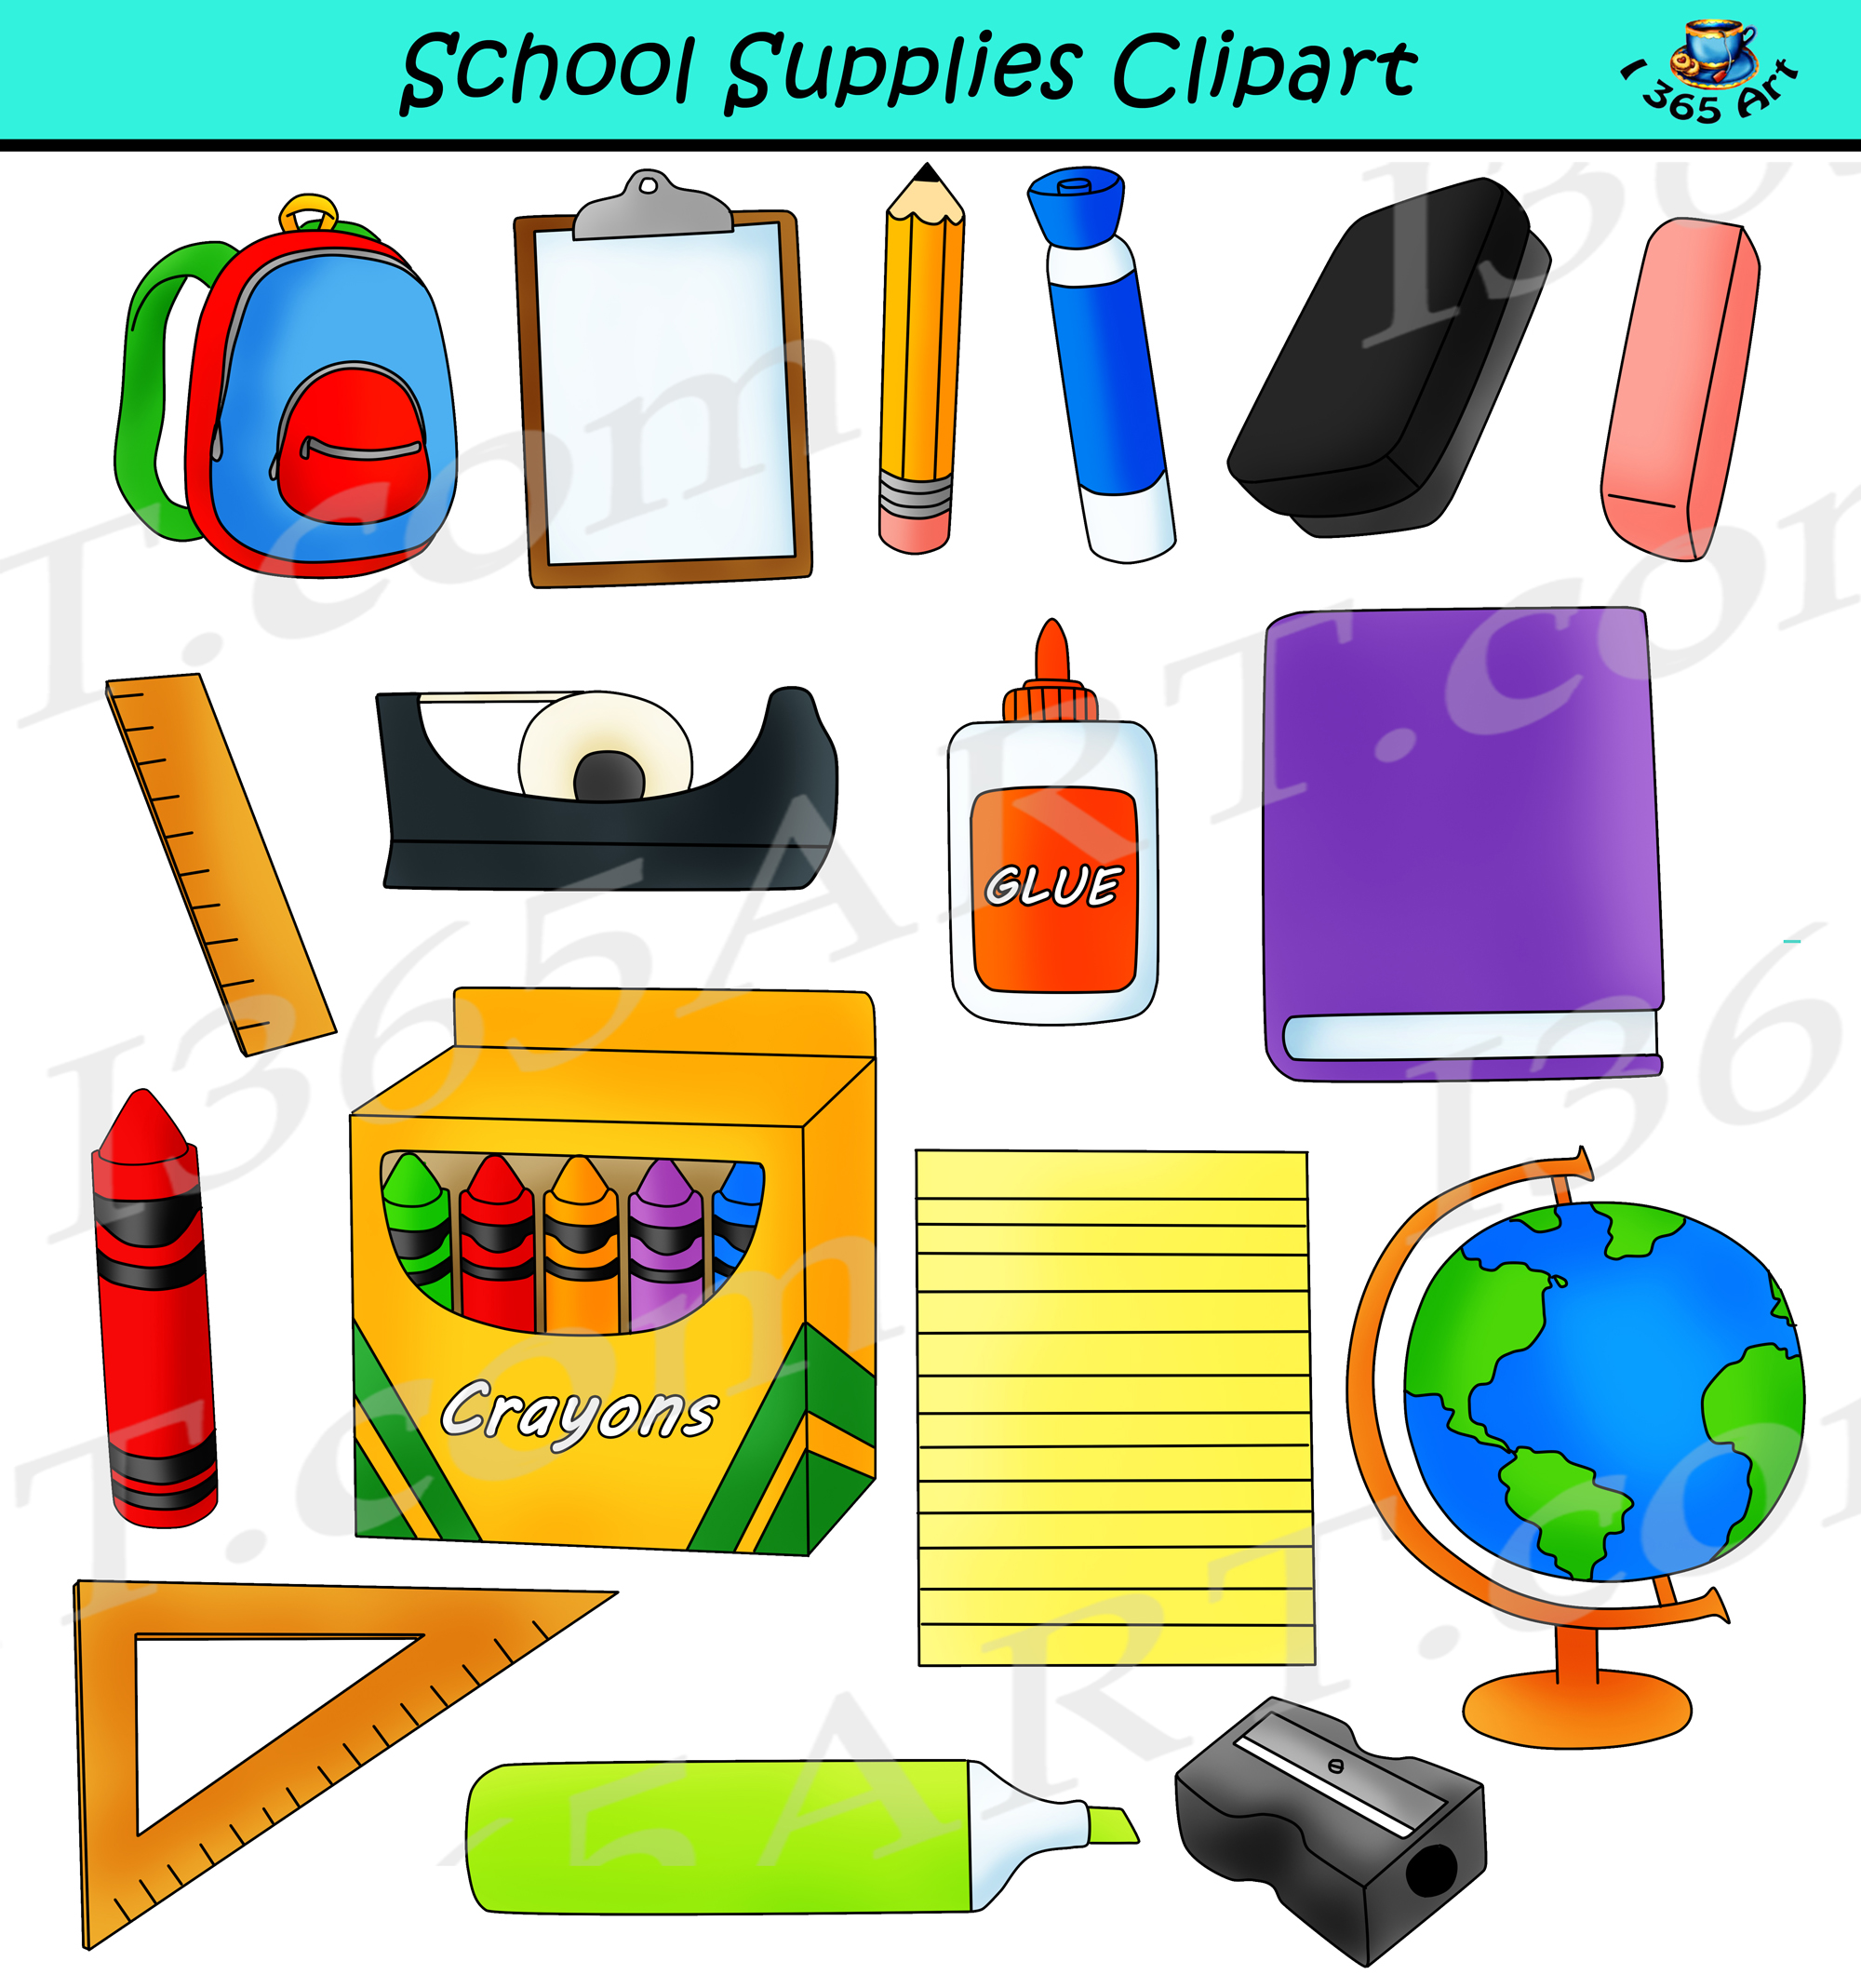 school supplies clipart back to school commercial graphics rh clipart4school com clipart school supplies cute clipart school supplies